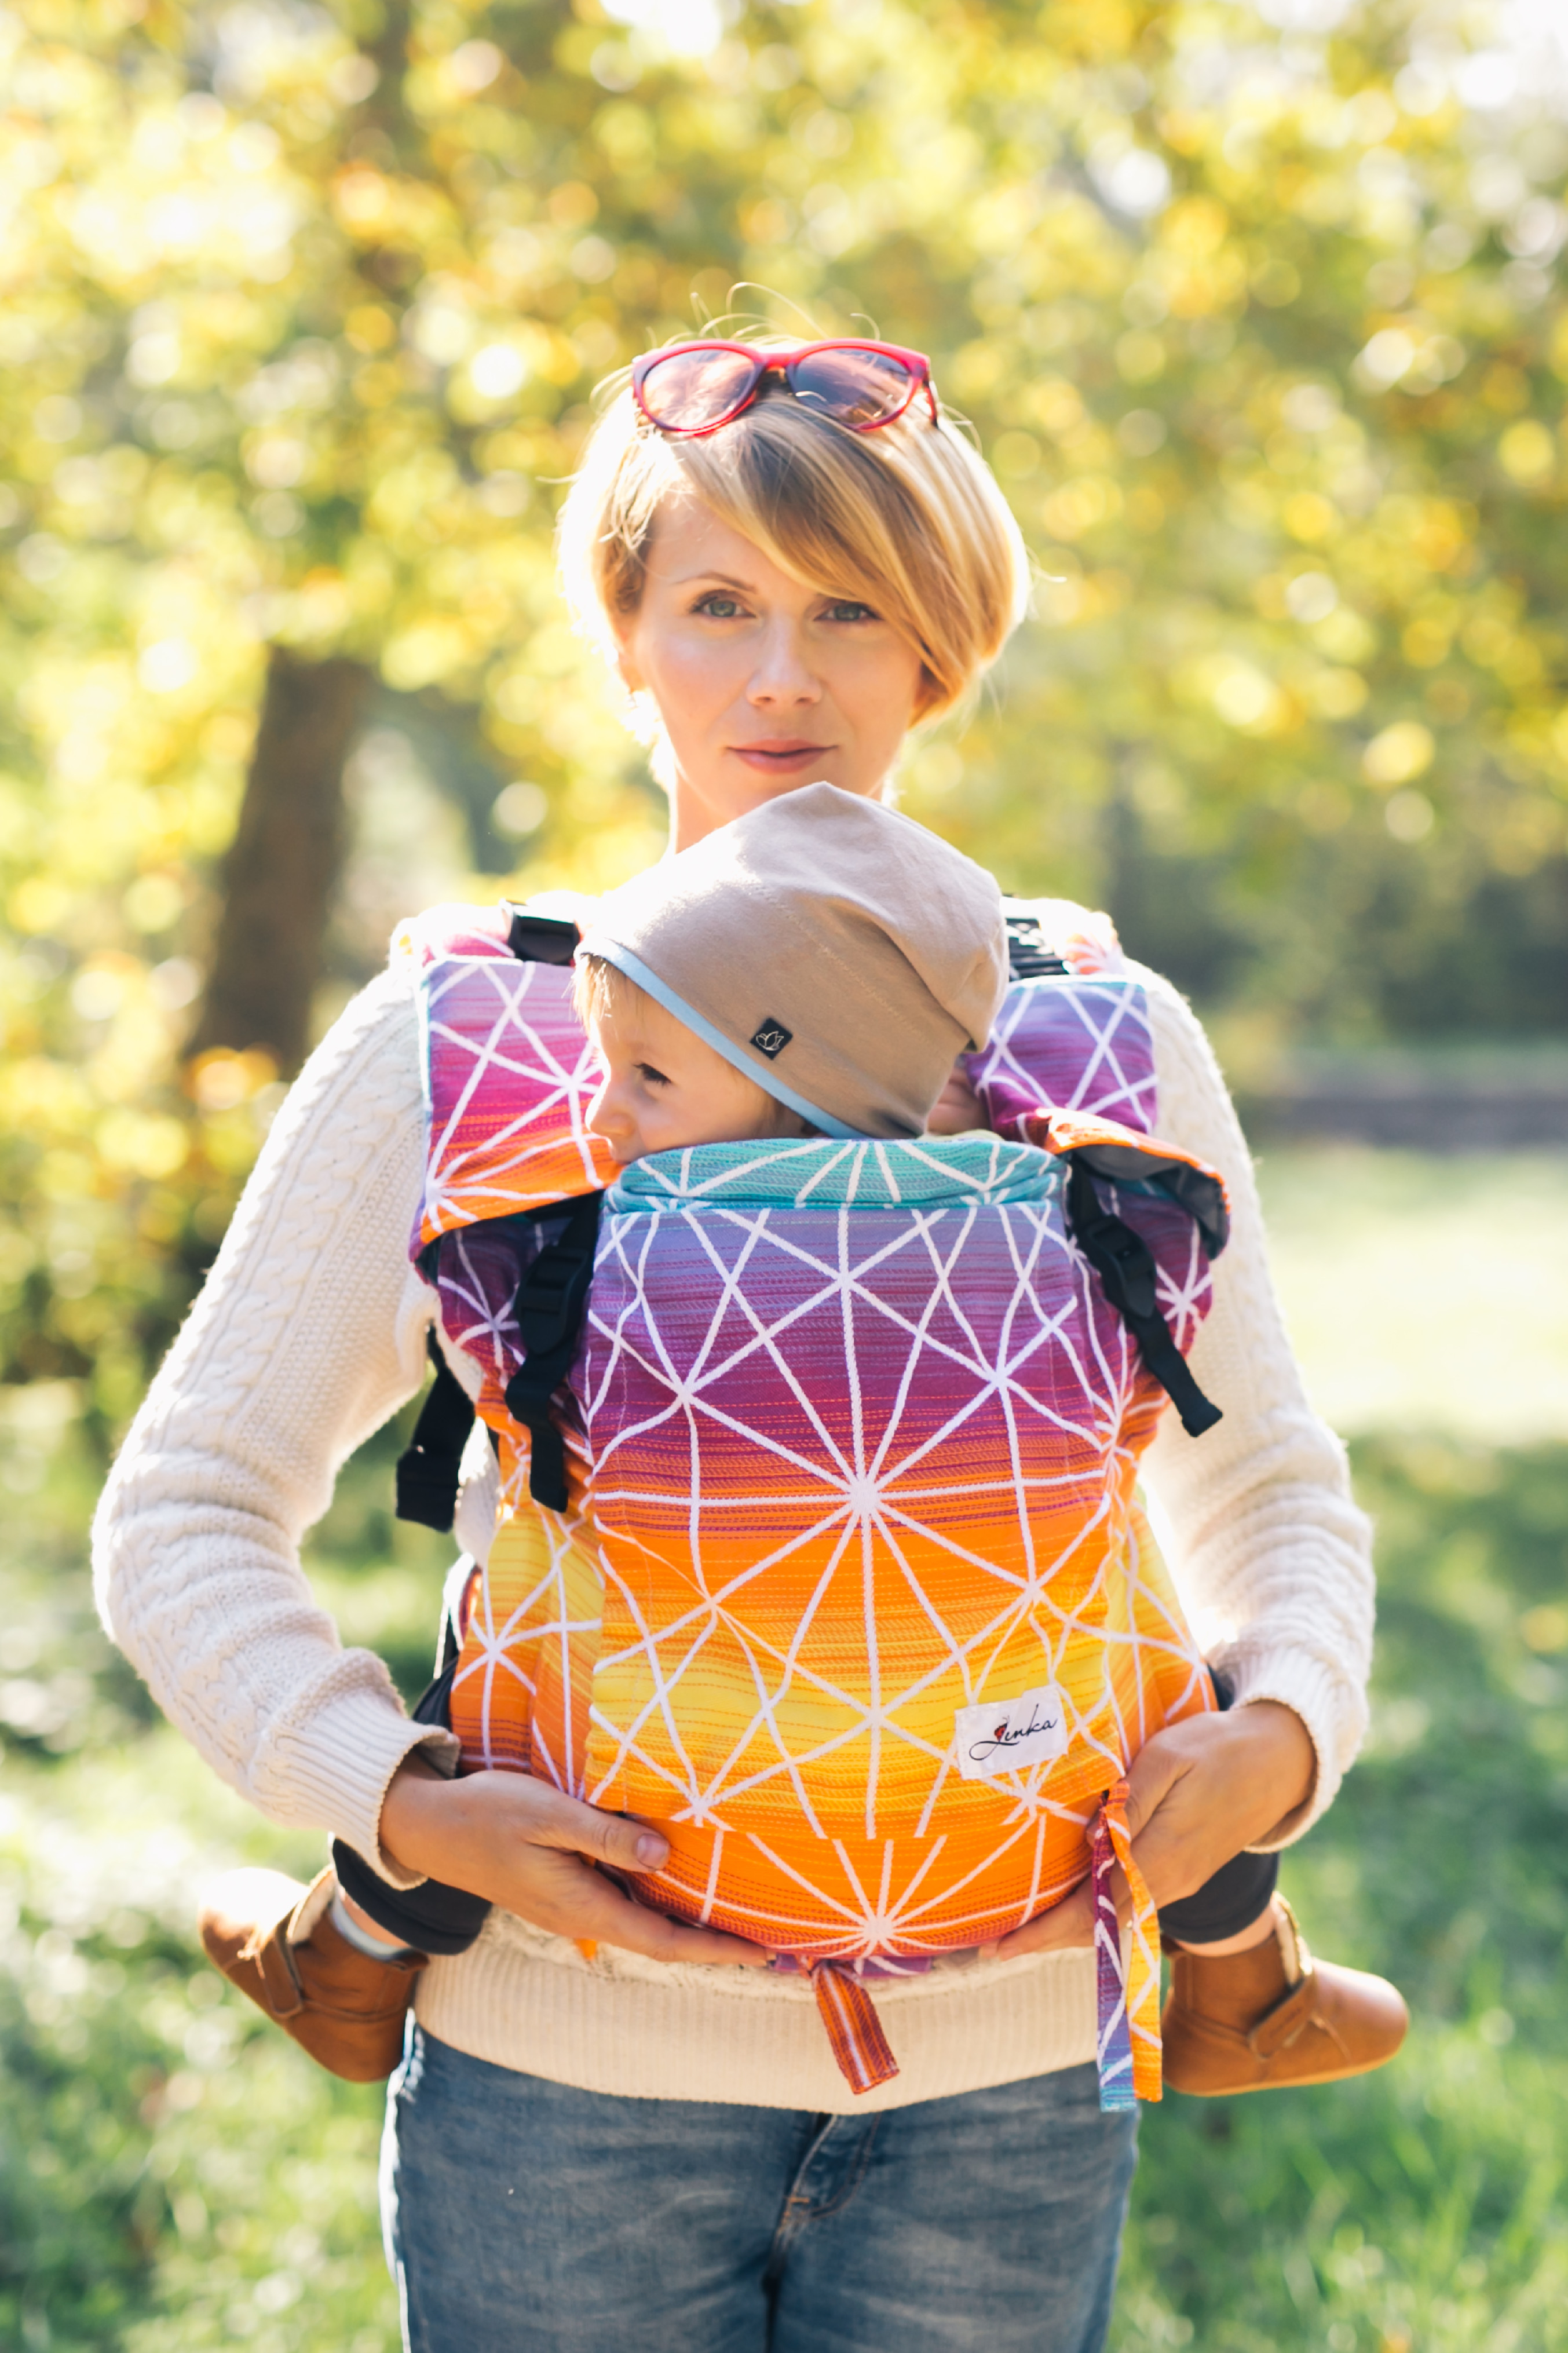 Baby Carrier - Be Lenka 4ever Spiderweb - Sunrise wide with the possibility of crossing